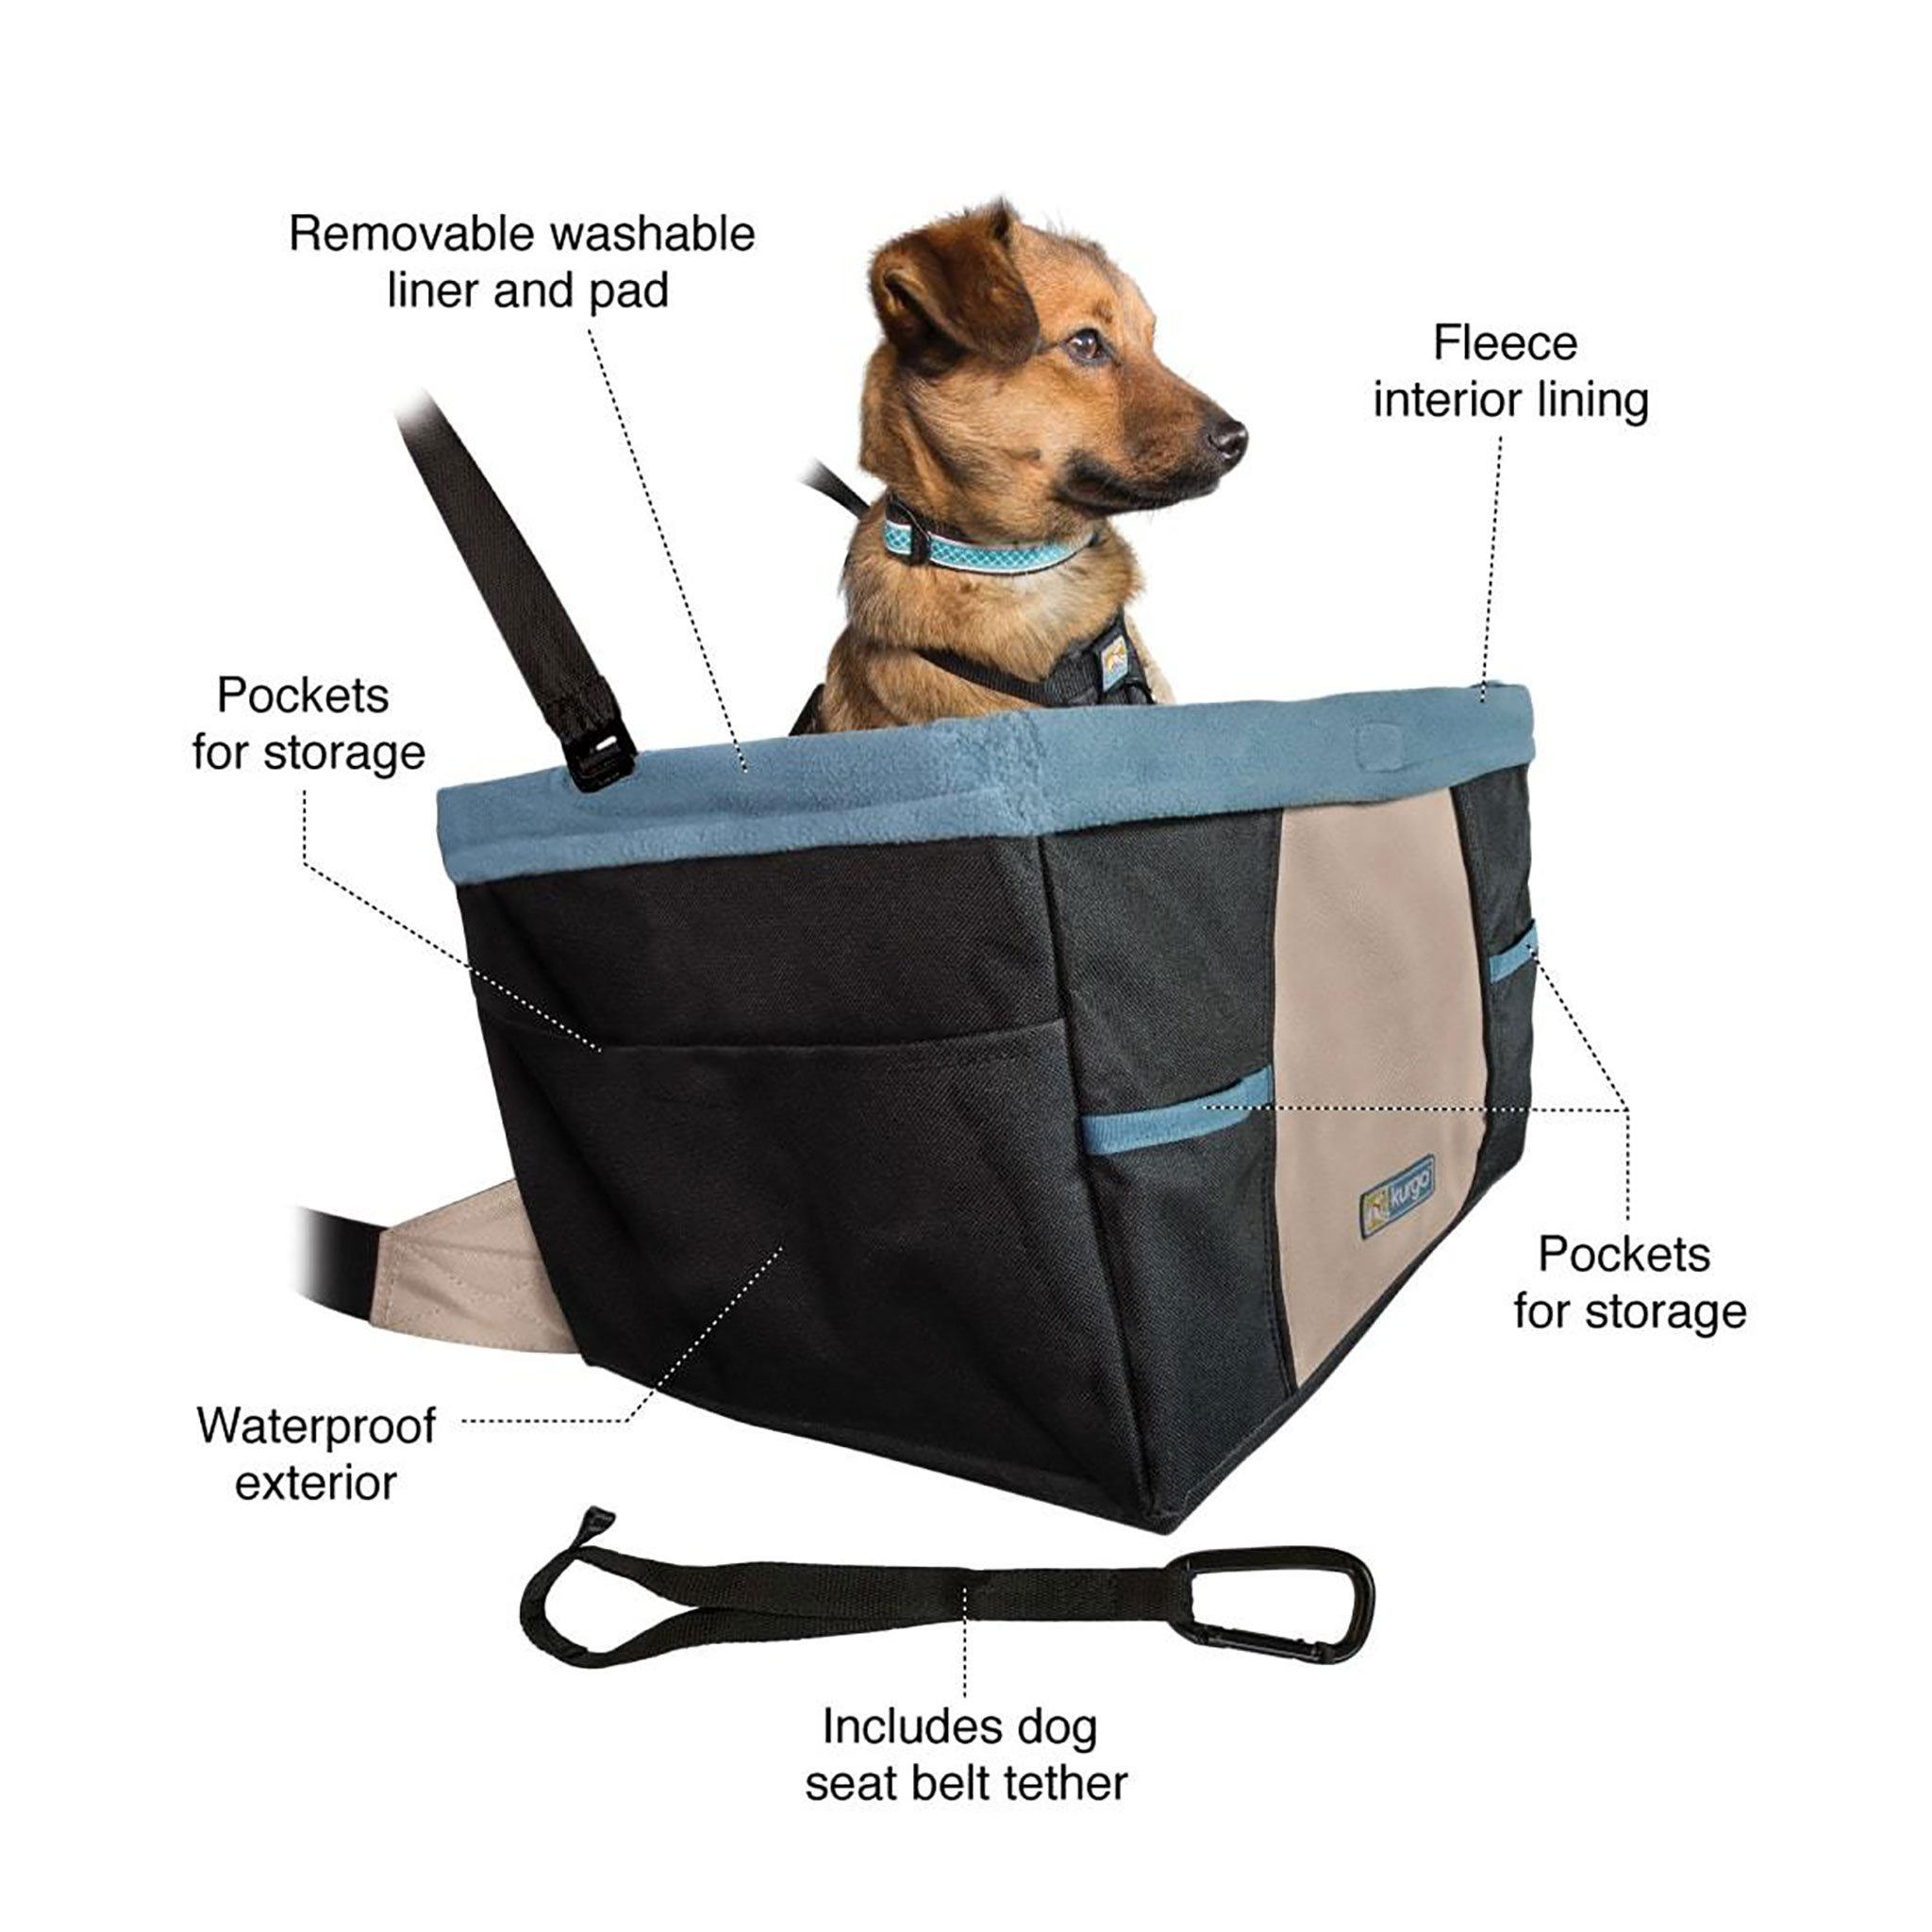 Simple safe lets your dog see out of the window to enjoy the ride